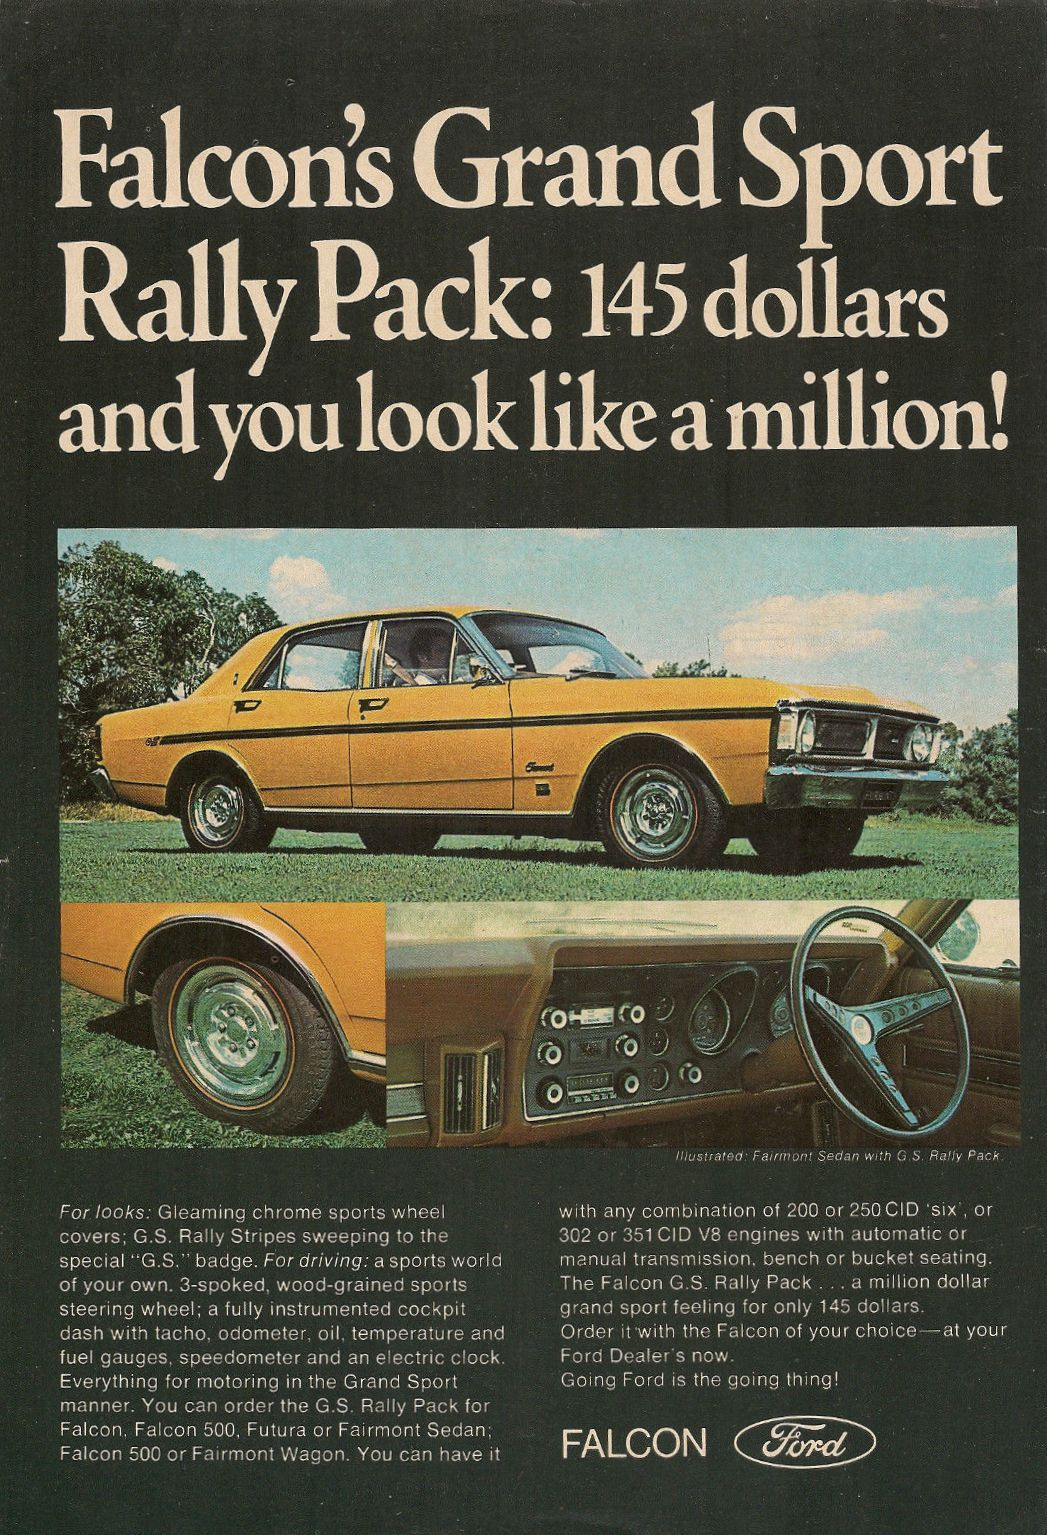 Falcon xb mcleod ford rockdale horn cars ford pinterest falcons ford and cars